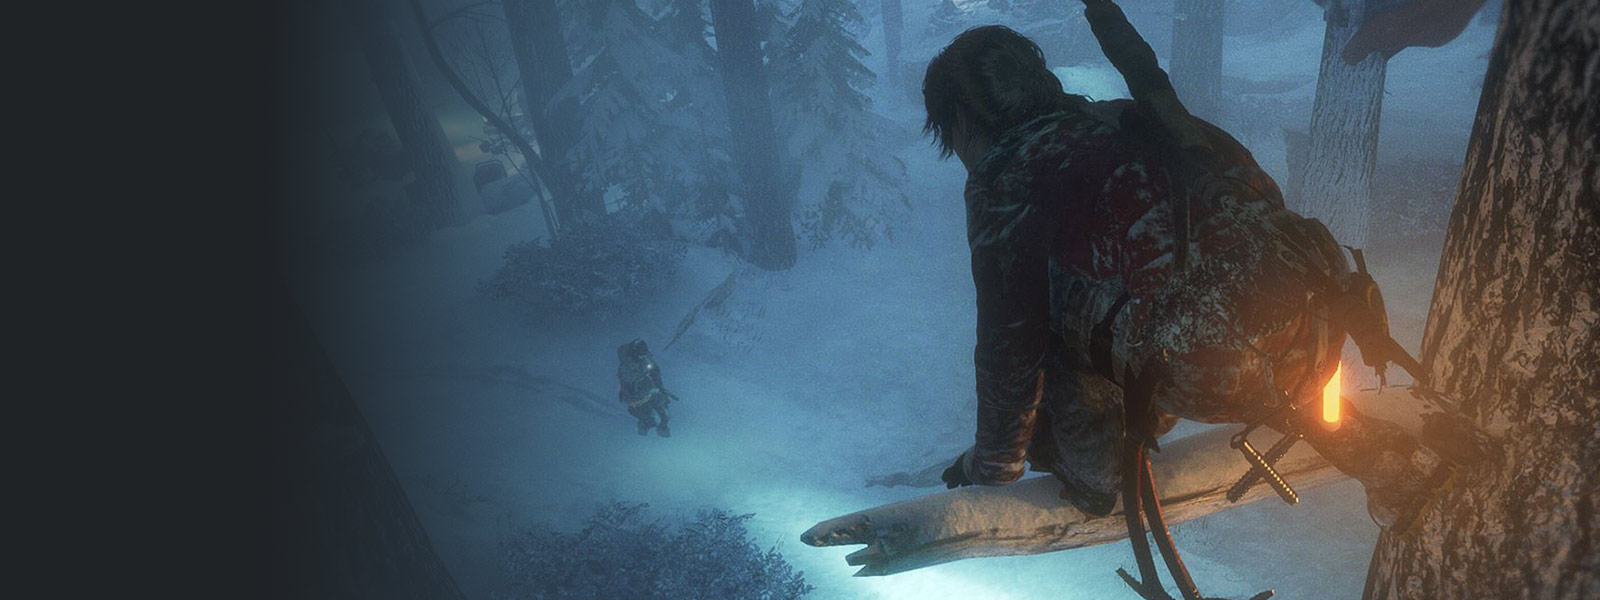 Lara on a snowy tree branch preparing to lunge at enemy below